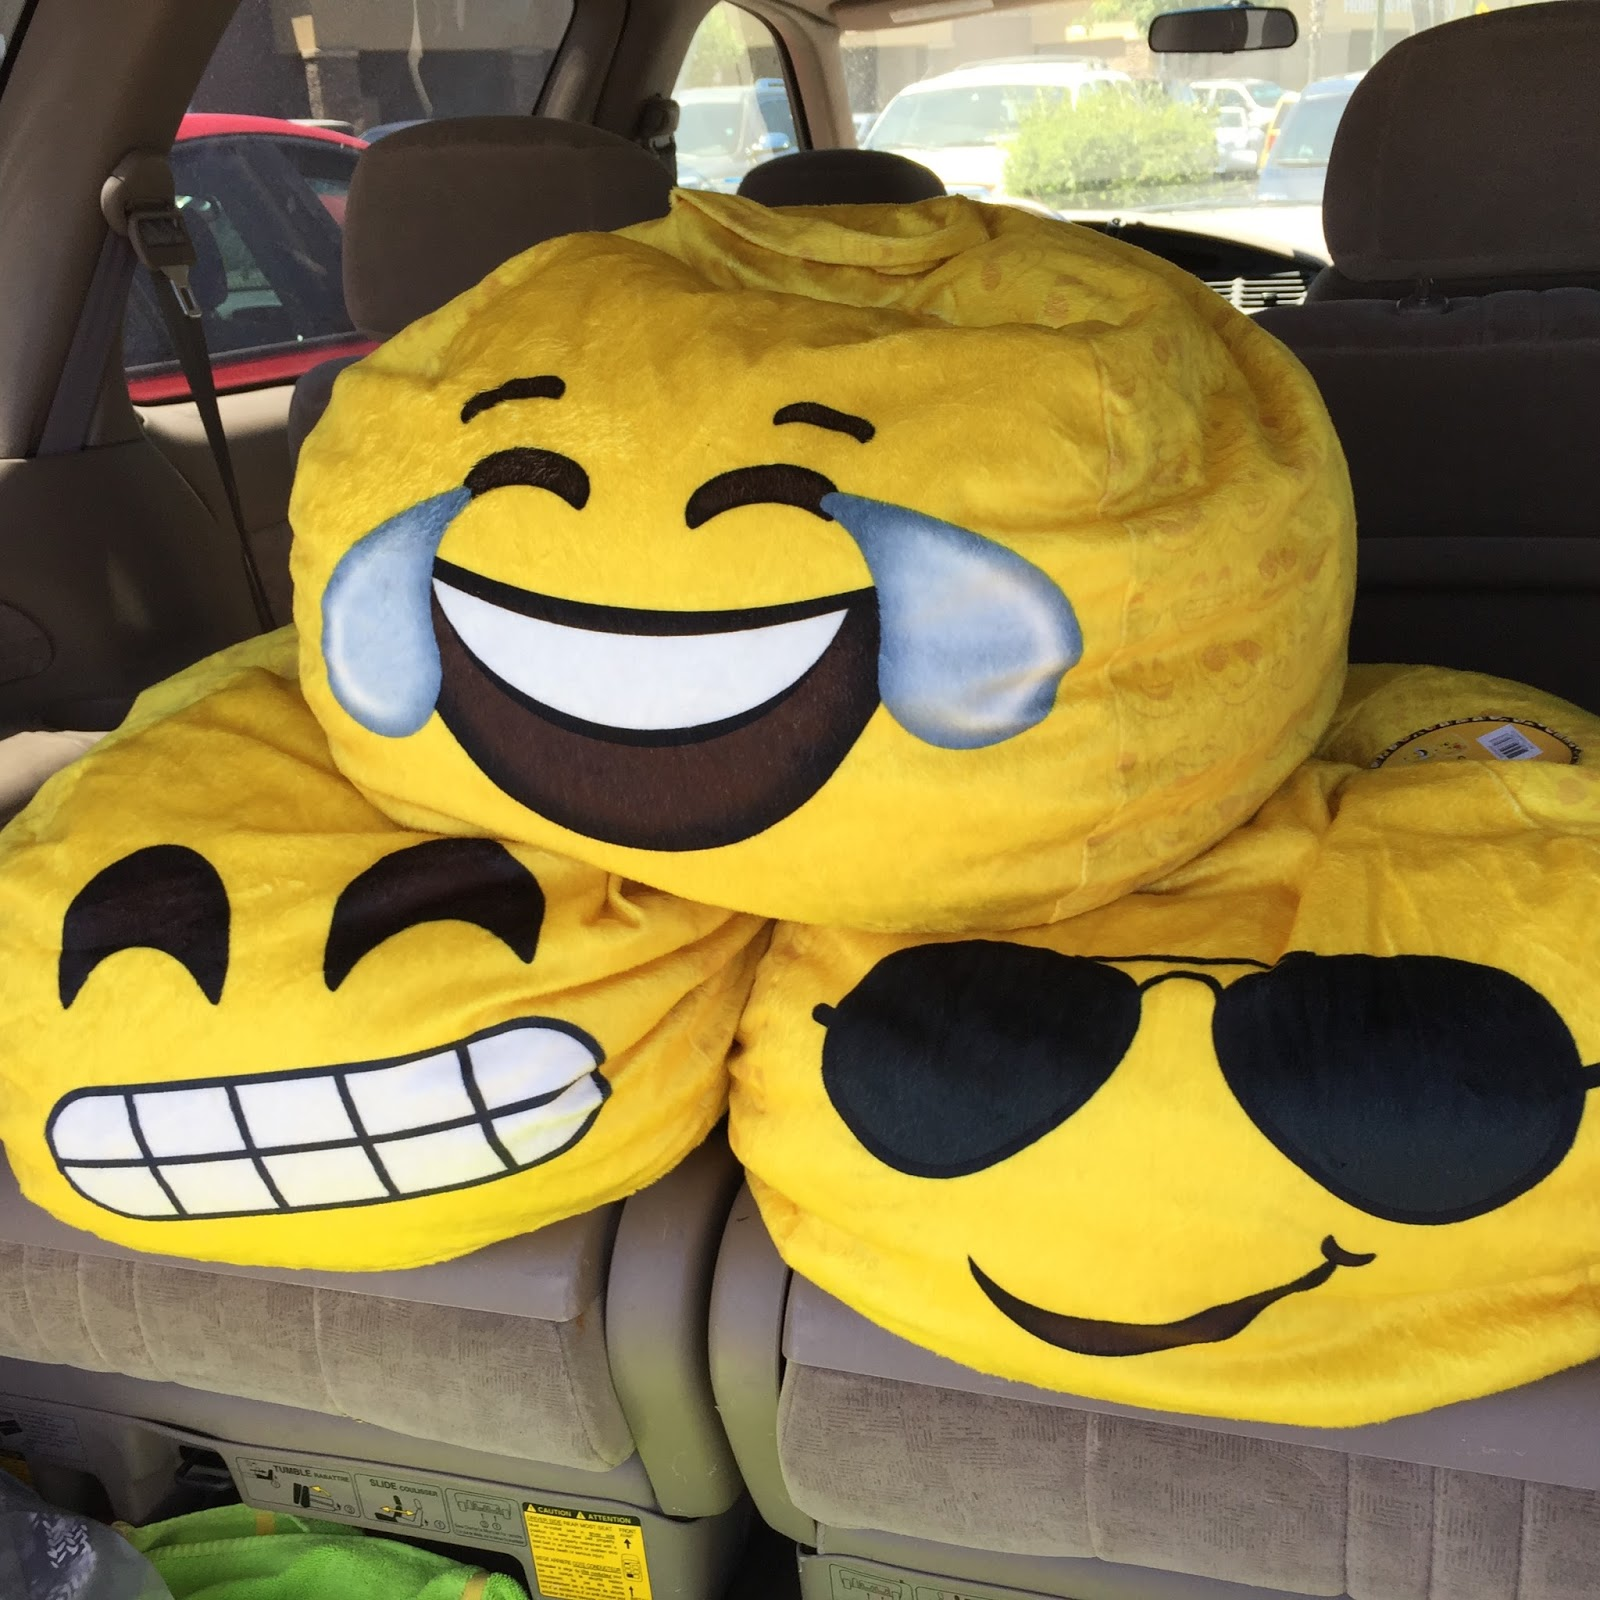 I Was Walking Through Walmart Minding My Own Business And These Emoji Beanbags Threw Themselves Into Cart Sort Of First Saw That They Were On